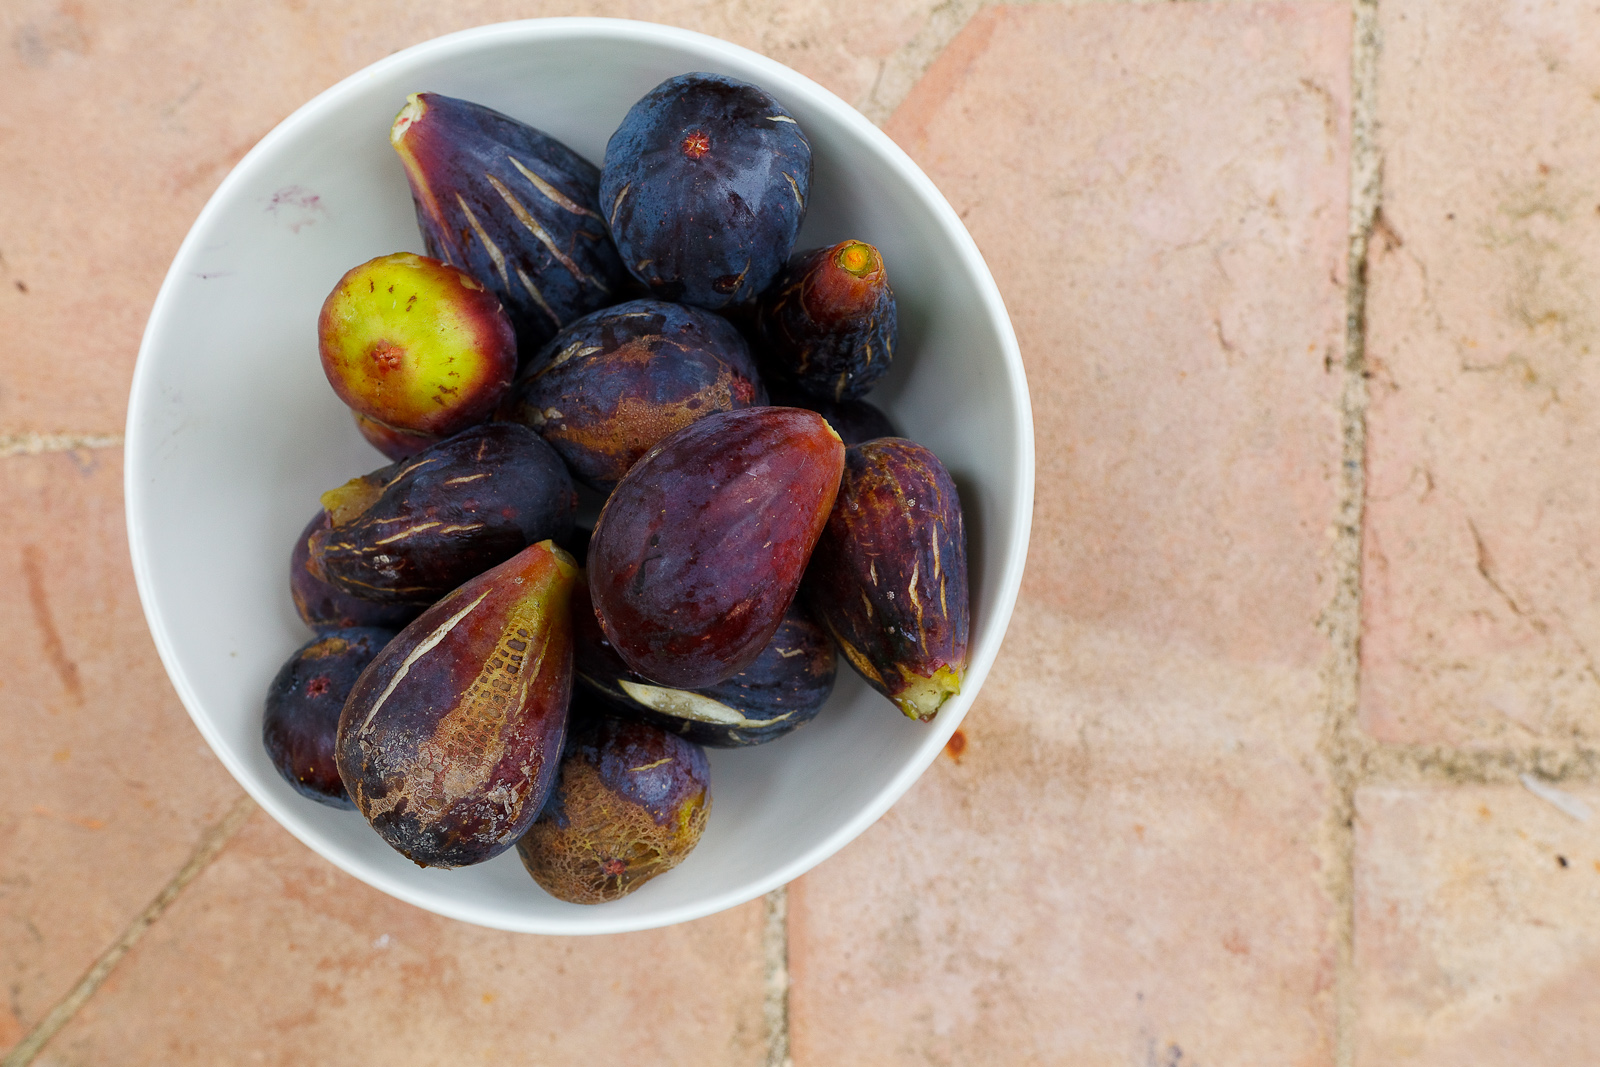 Fresh figs from a nearby tree